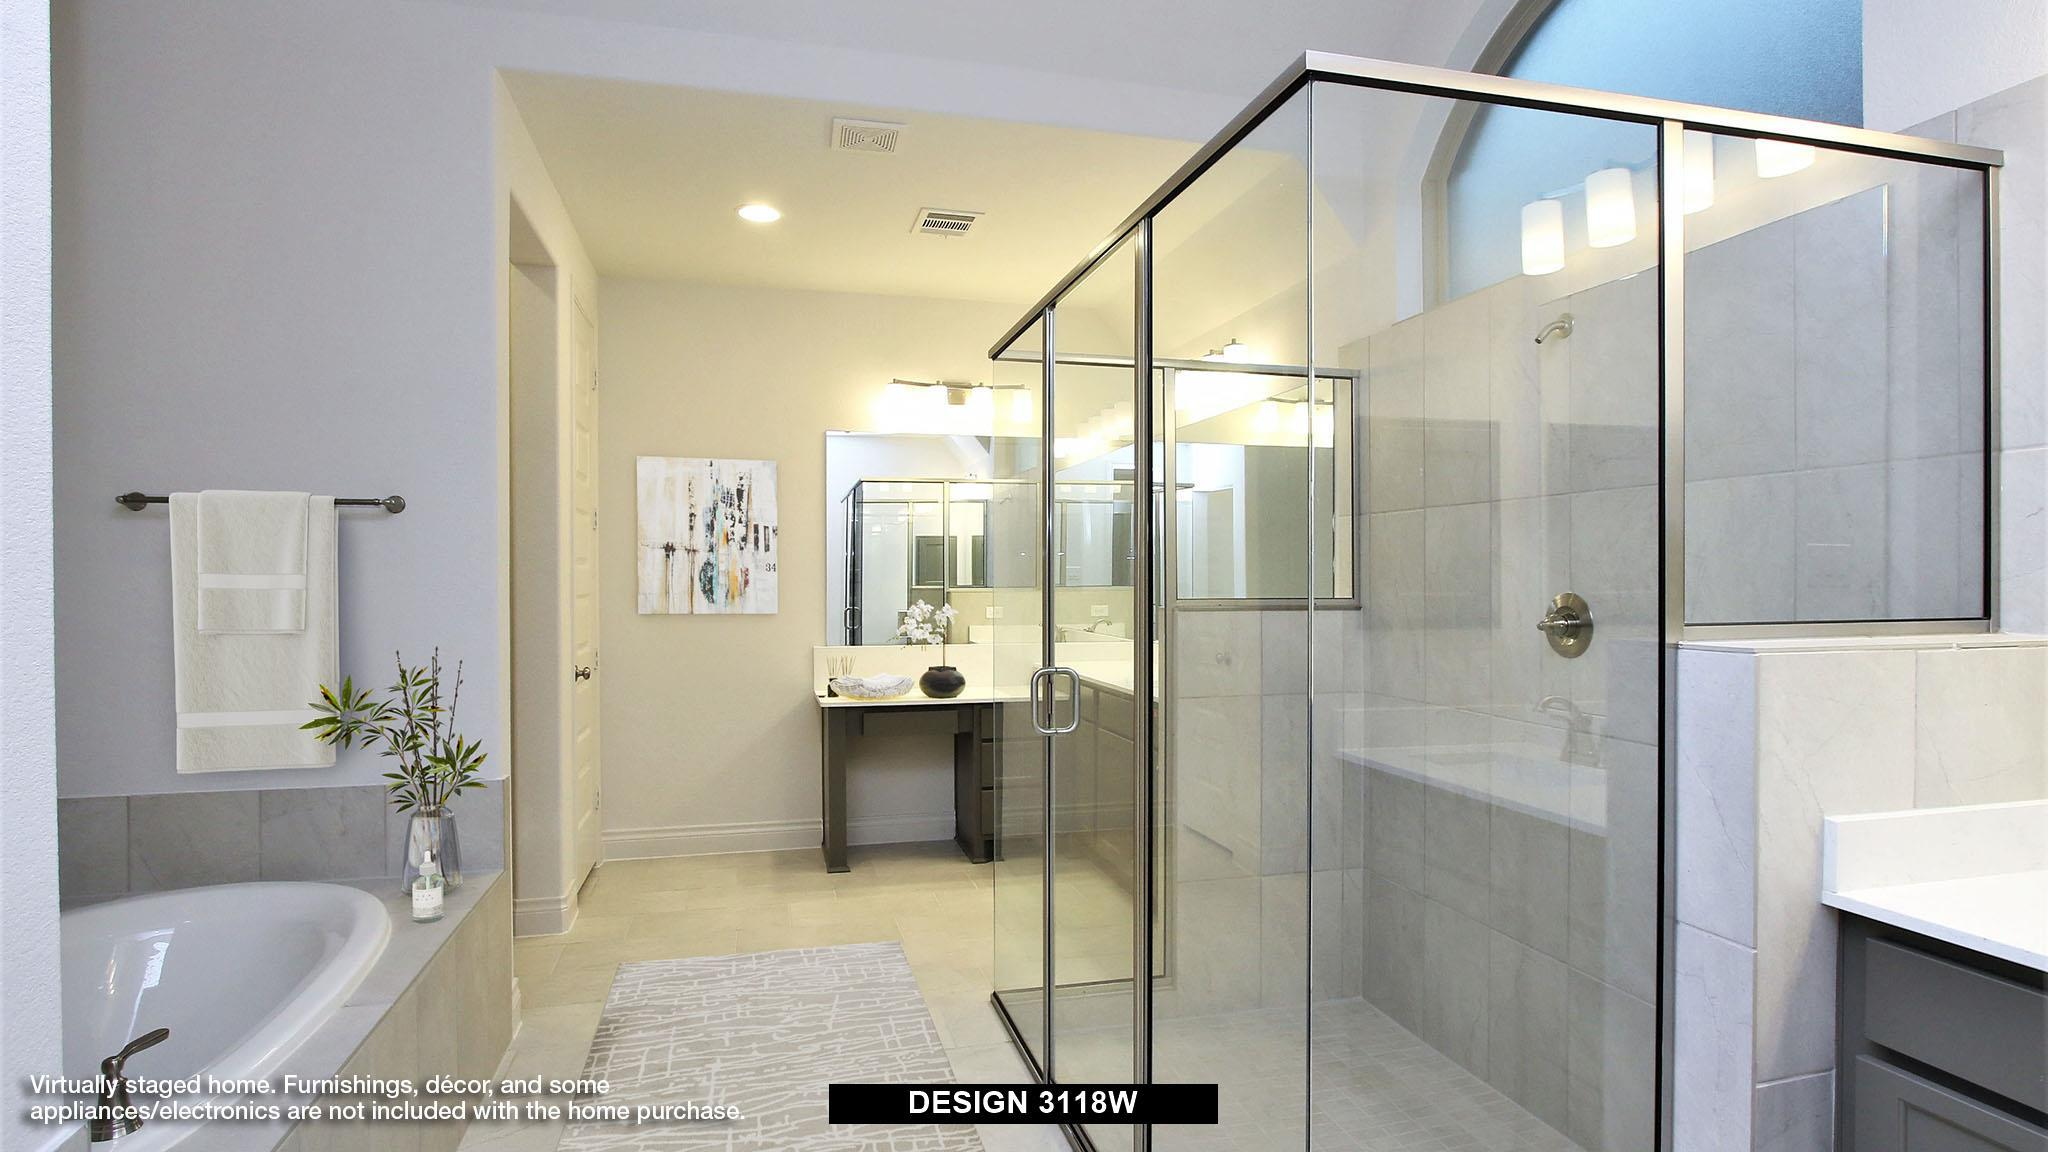 Bathroom featured in the 3118W By Perry Homes in Dallas, TX